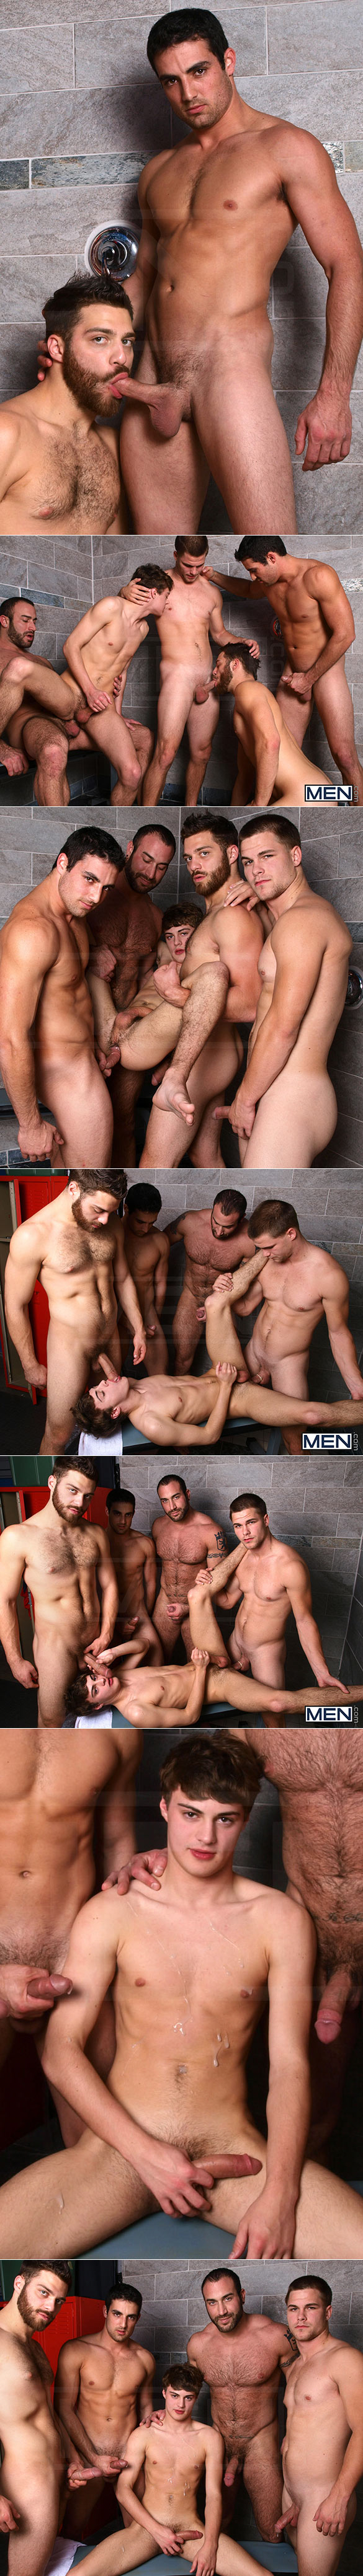 "Men.com: Hunter Page gets fucked by Spencer Reed, Tommy Defendi, Jimmy Johnson and Jack King in ""Jizz Shower"""